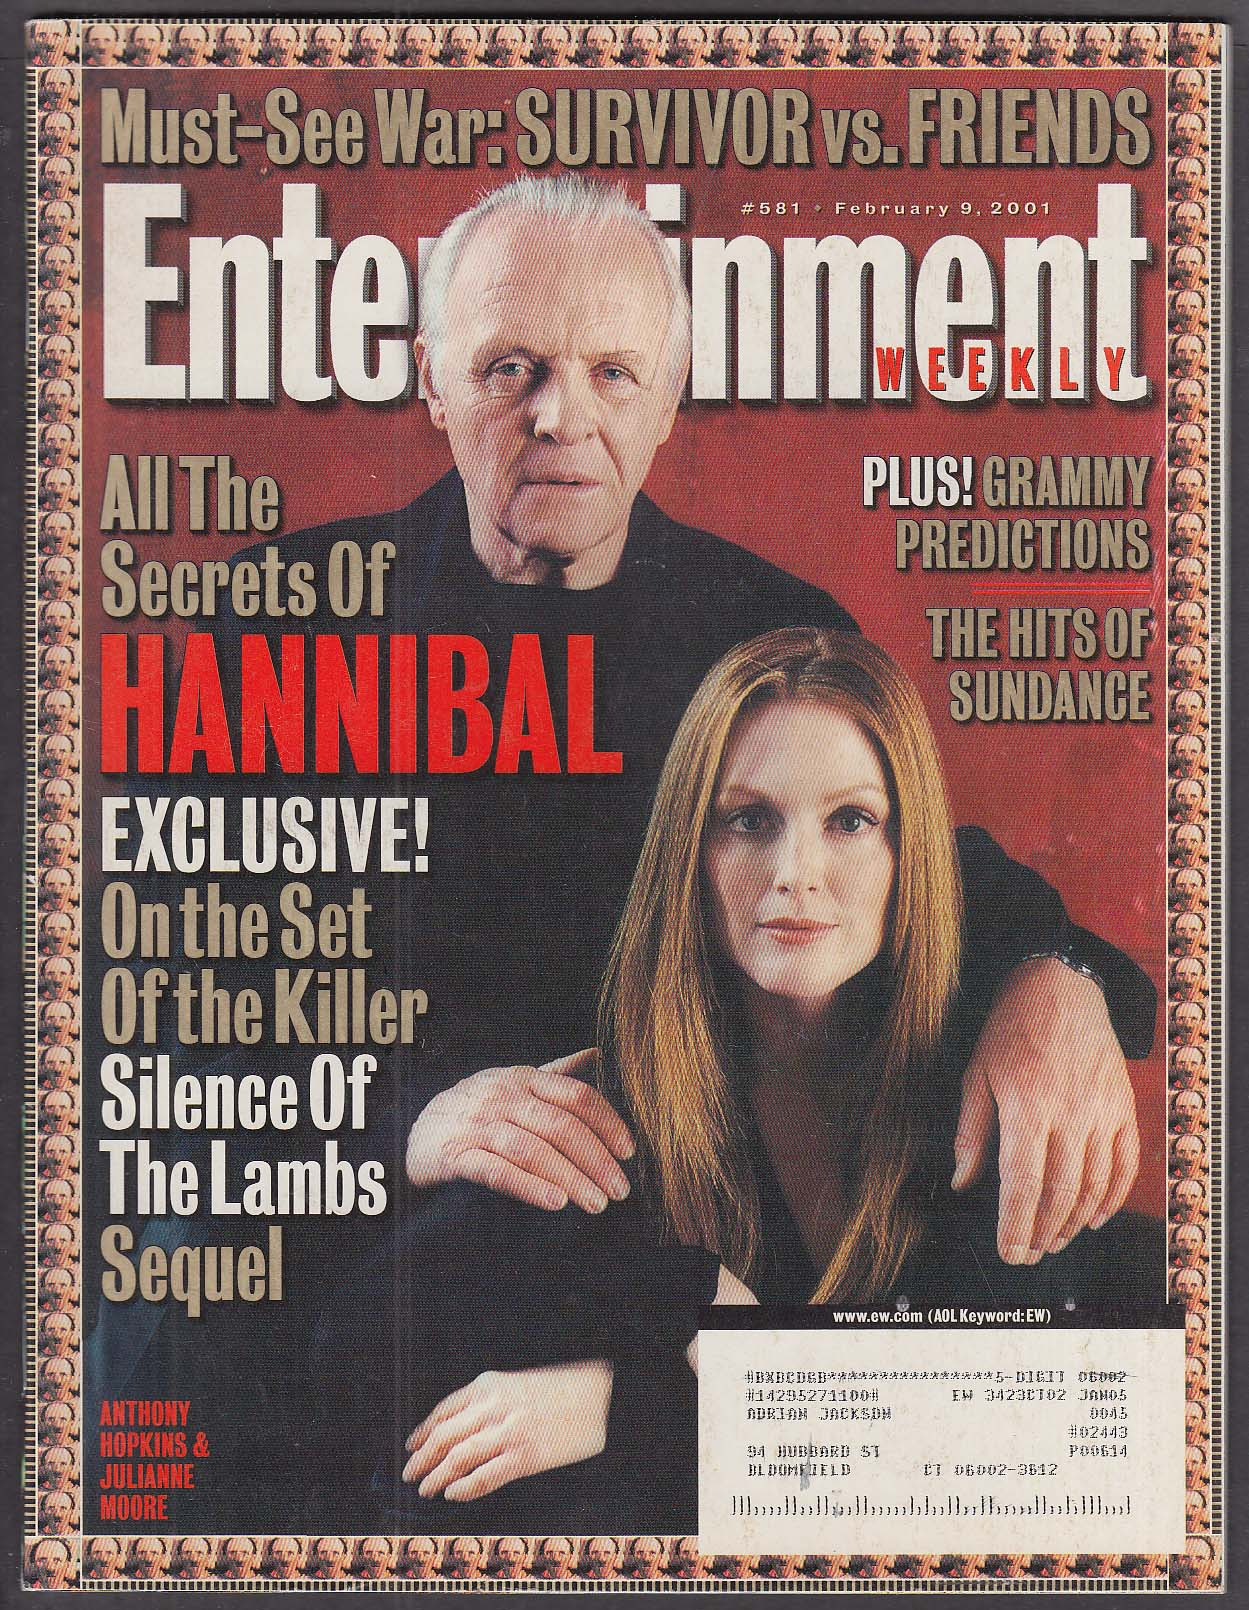 ENTERTAINMENT WEEKLY #581 Anthony Hopkins Julianne Moore Hannibal 2/9 2001